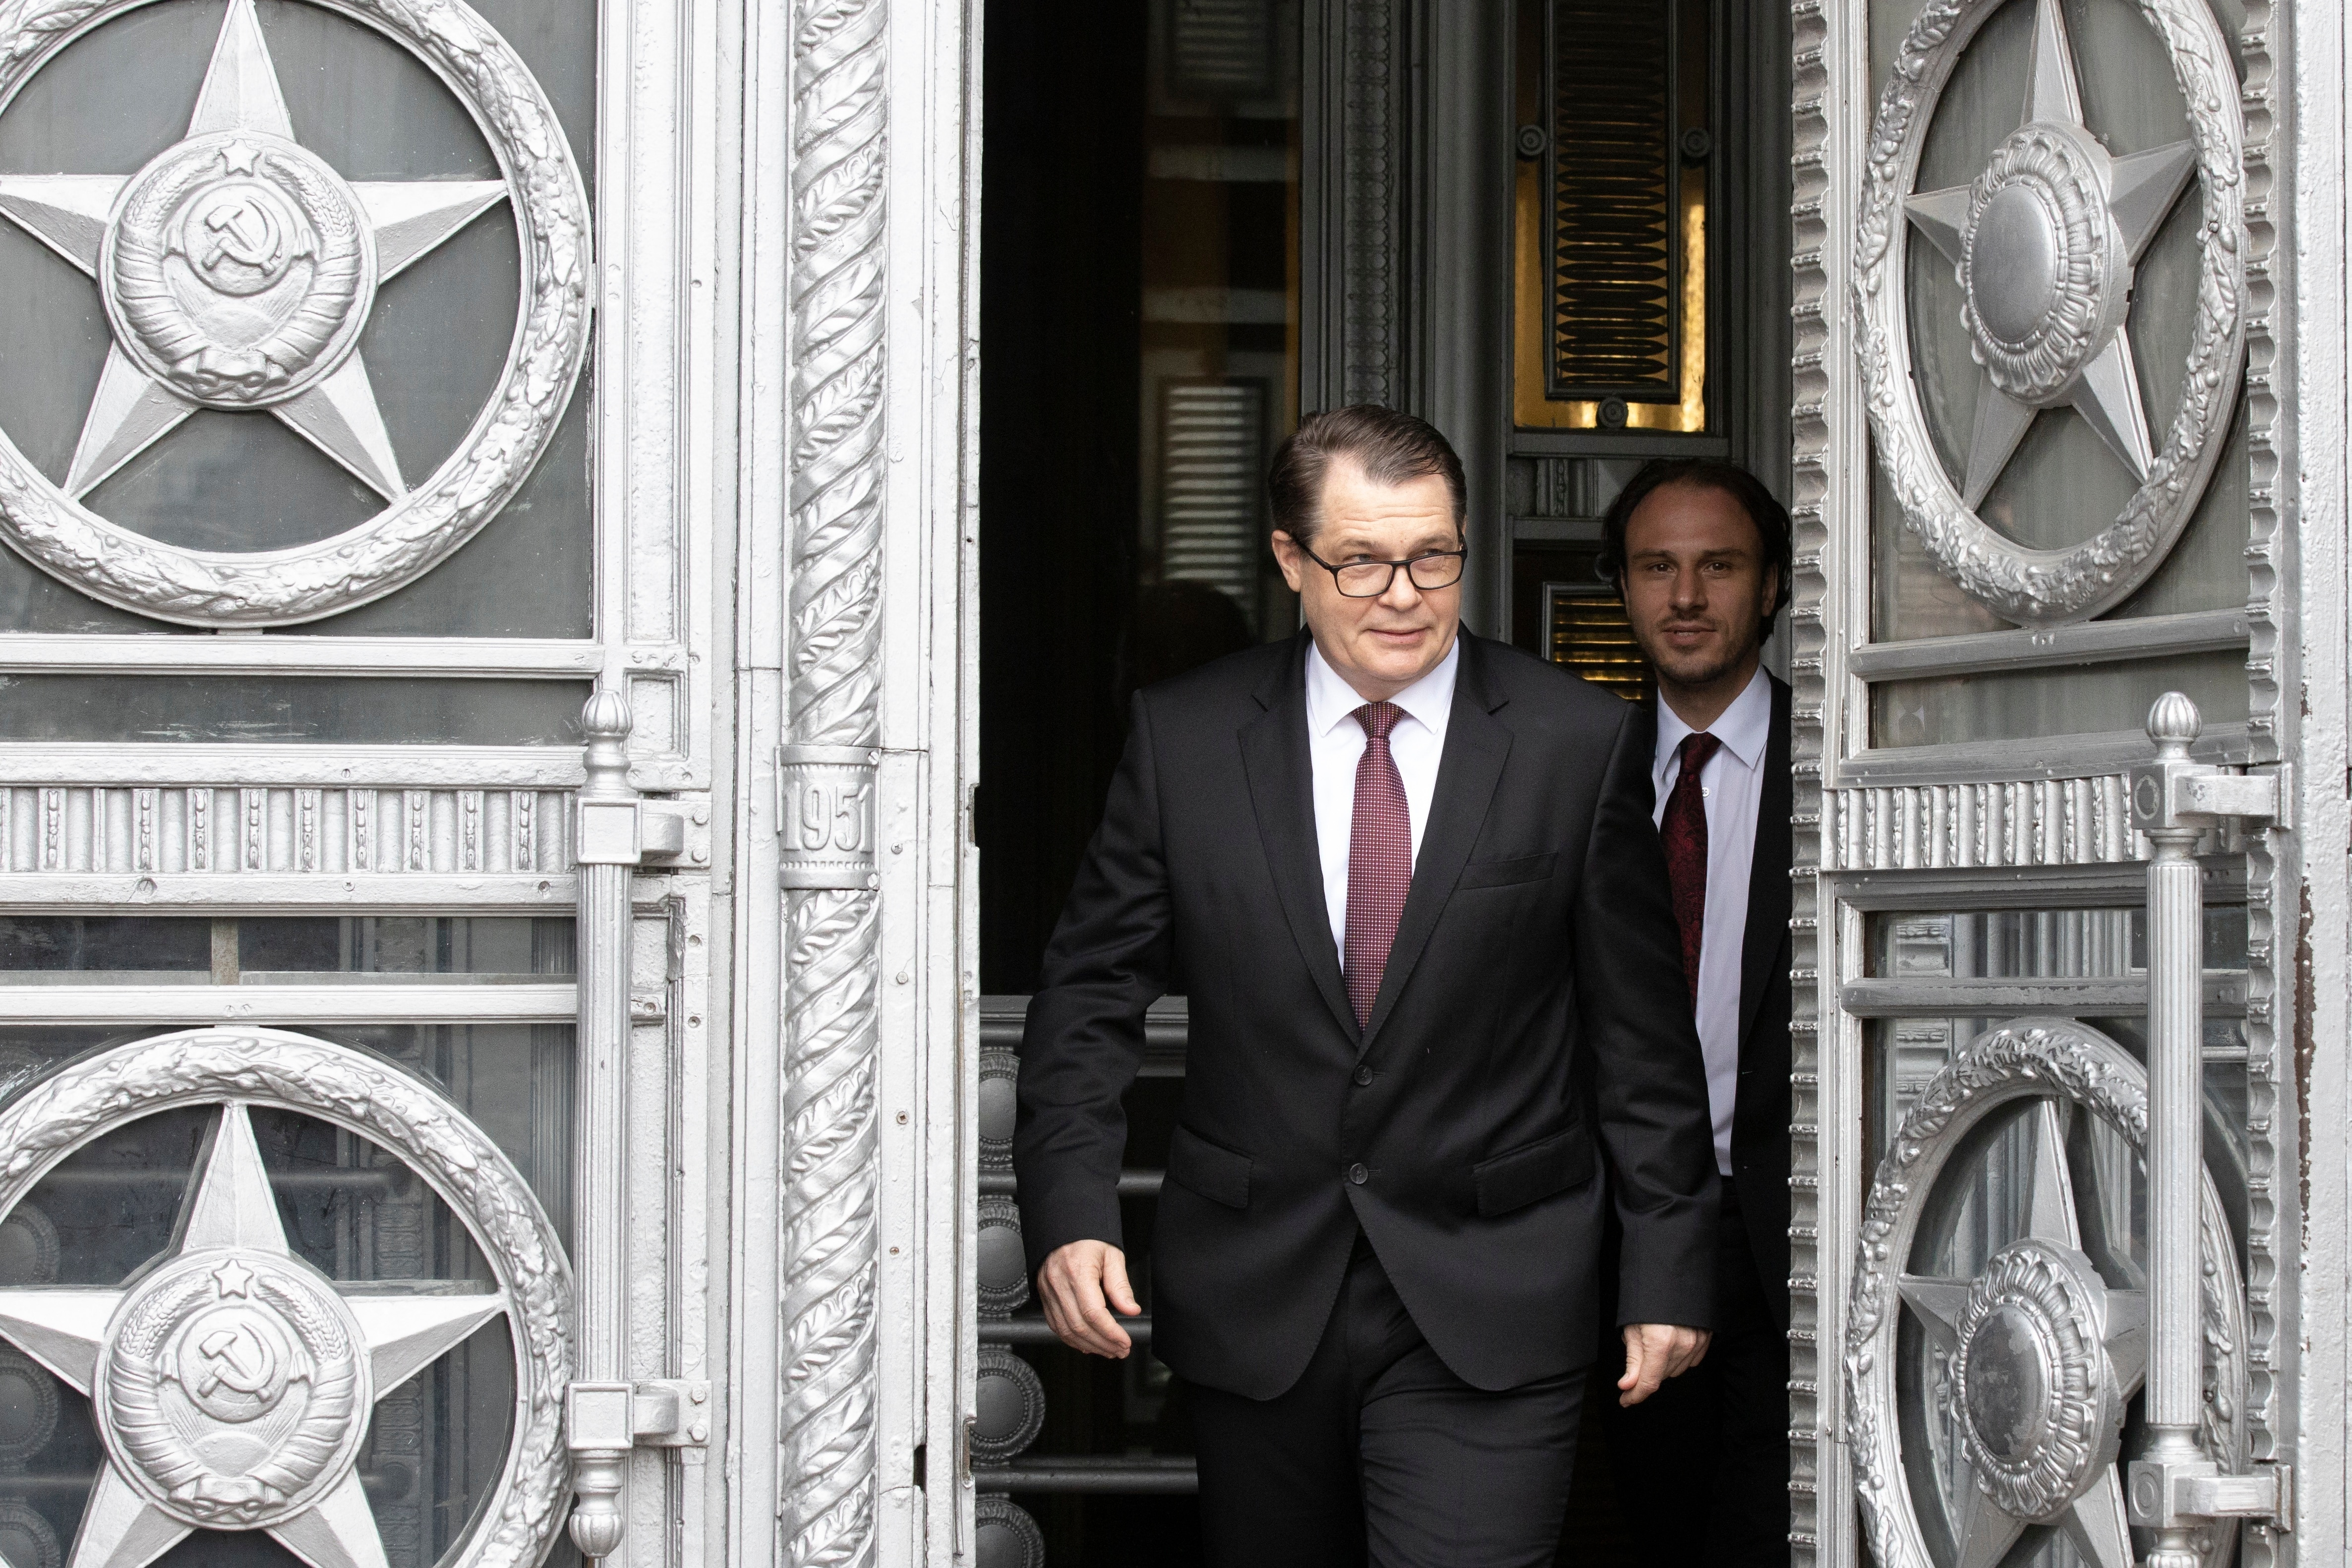 Photo of Russia Expels 2 Czech Diplomats in Quid Pro Quo Move